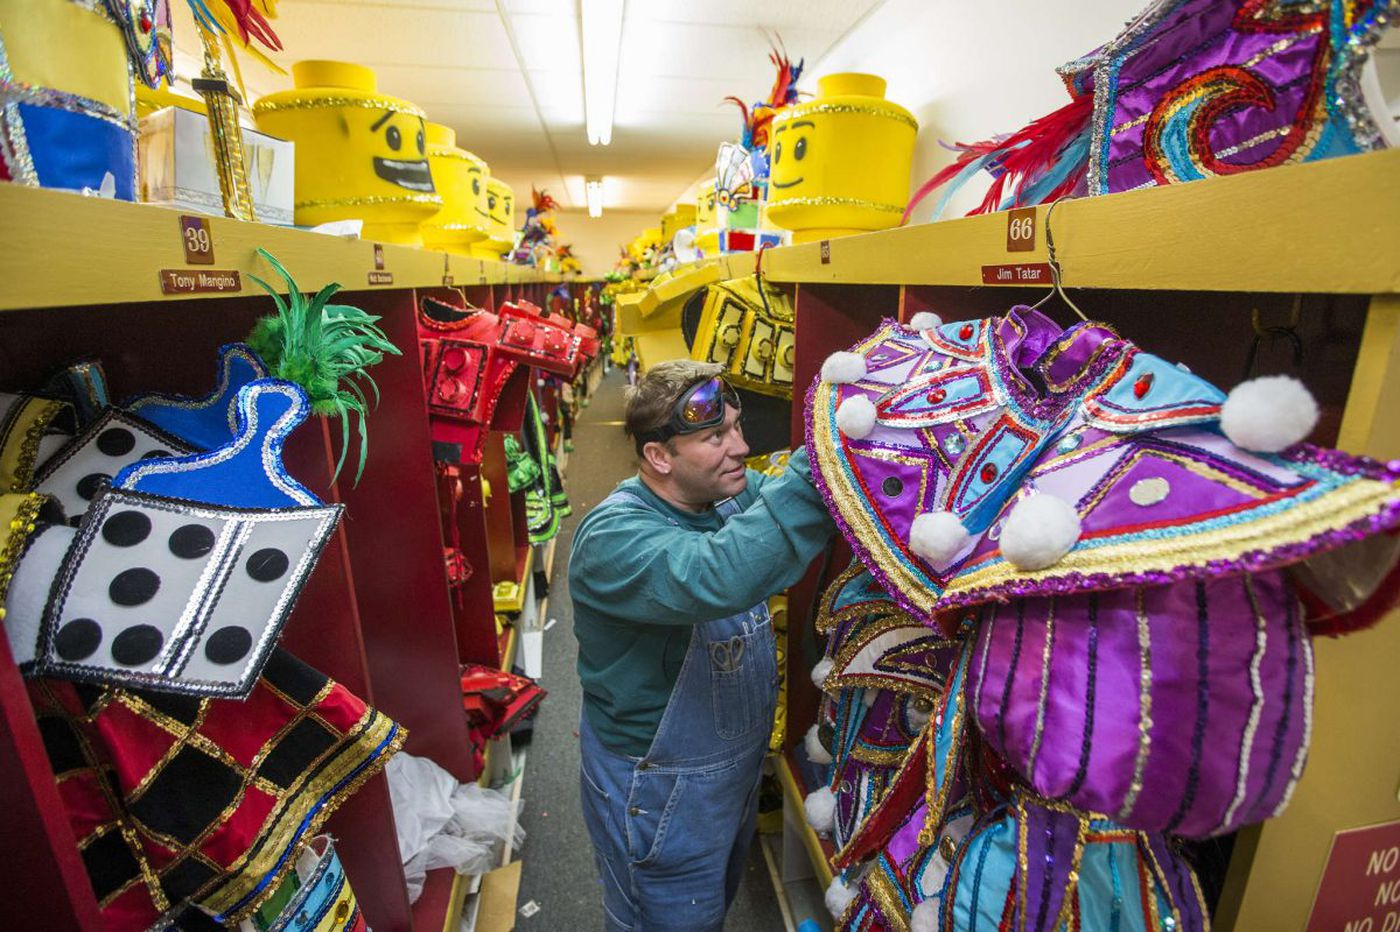 Mummers Parade will go on as scheduled